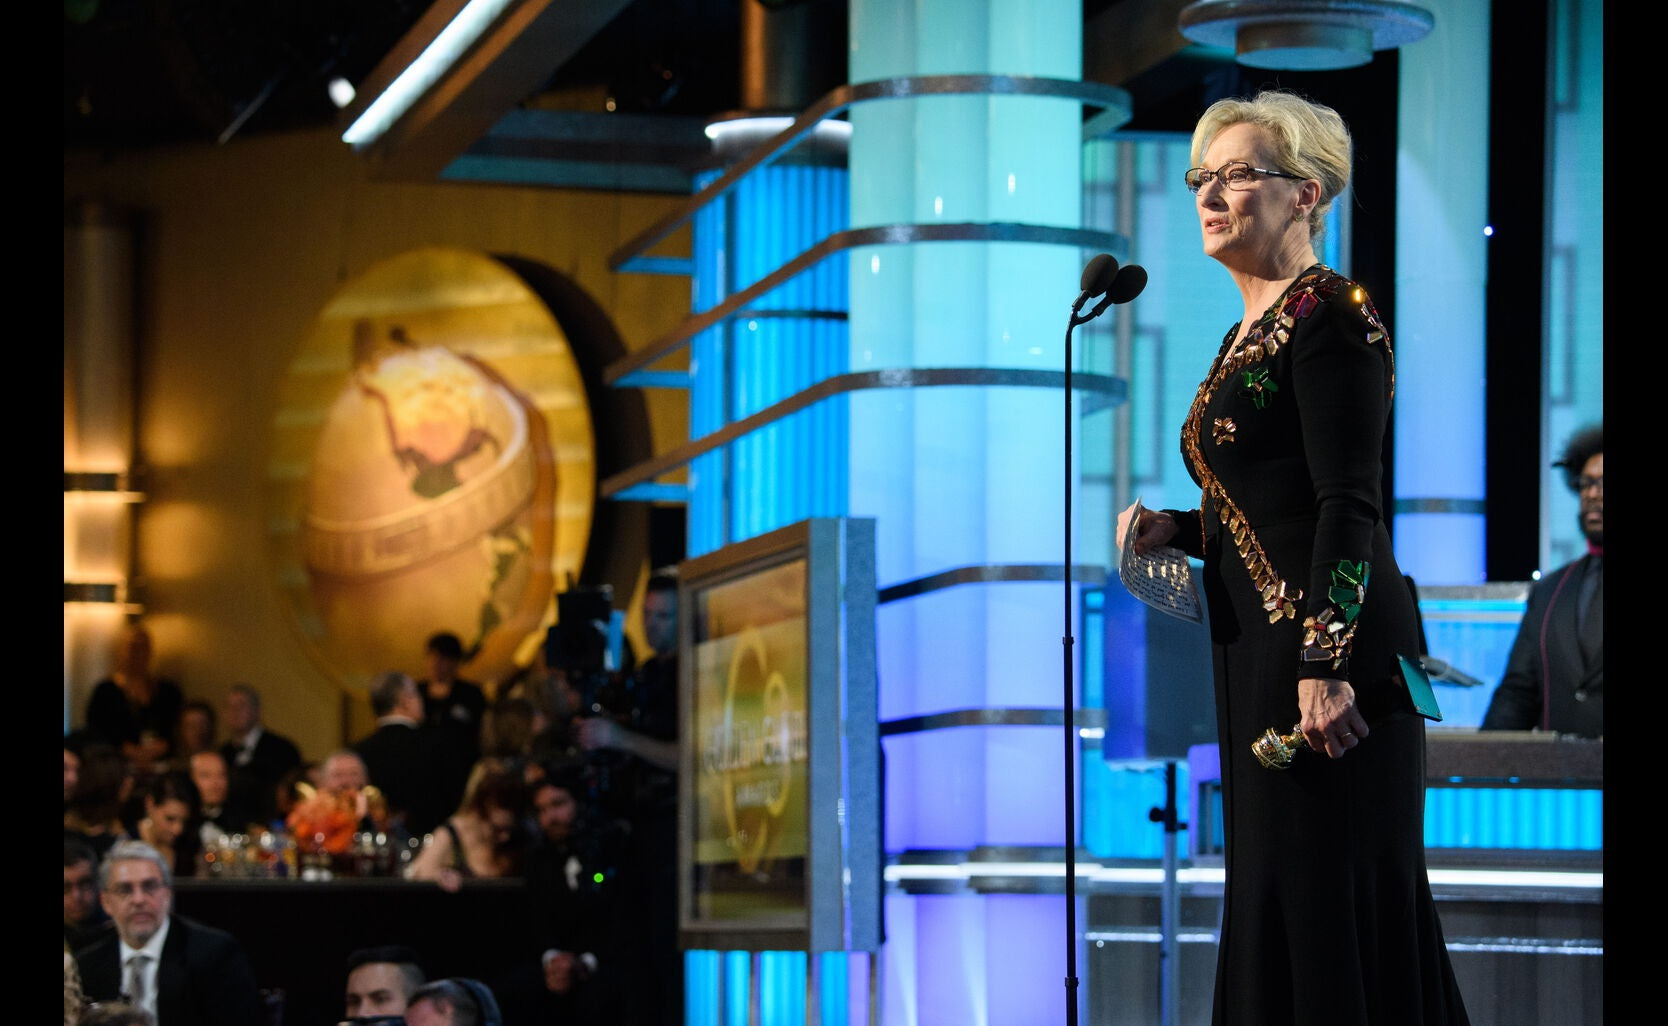 Actress Meryl Streep, Golden Globe winner and nominee, accepts her Cecil B. deMille award